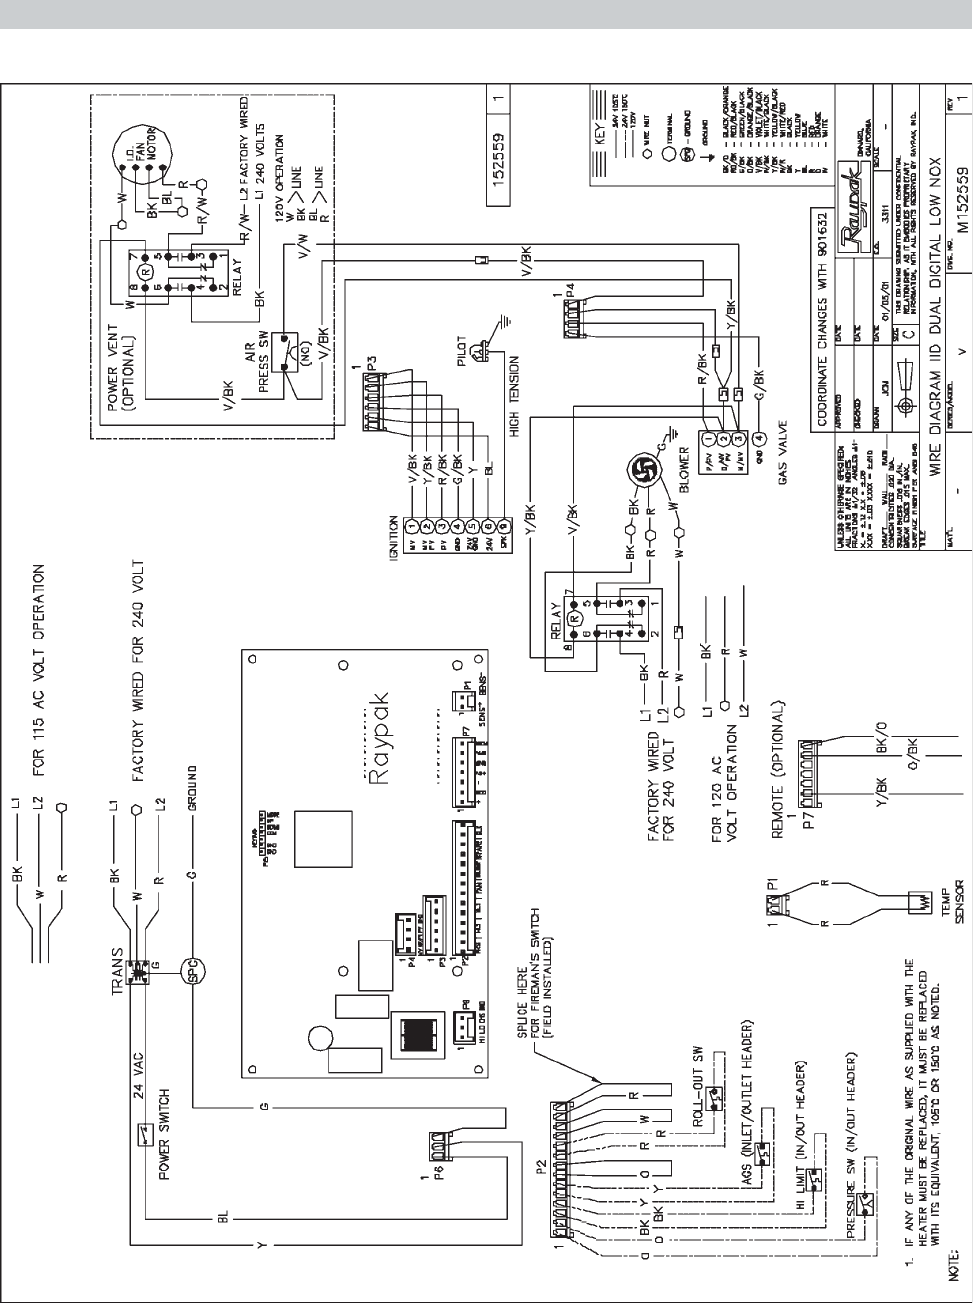 Diagram  Inground Pool Wiring Diagram Picture Schematic